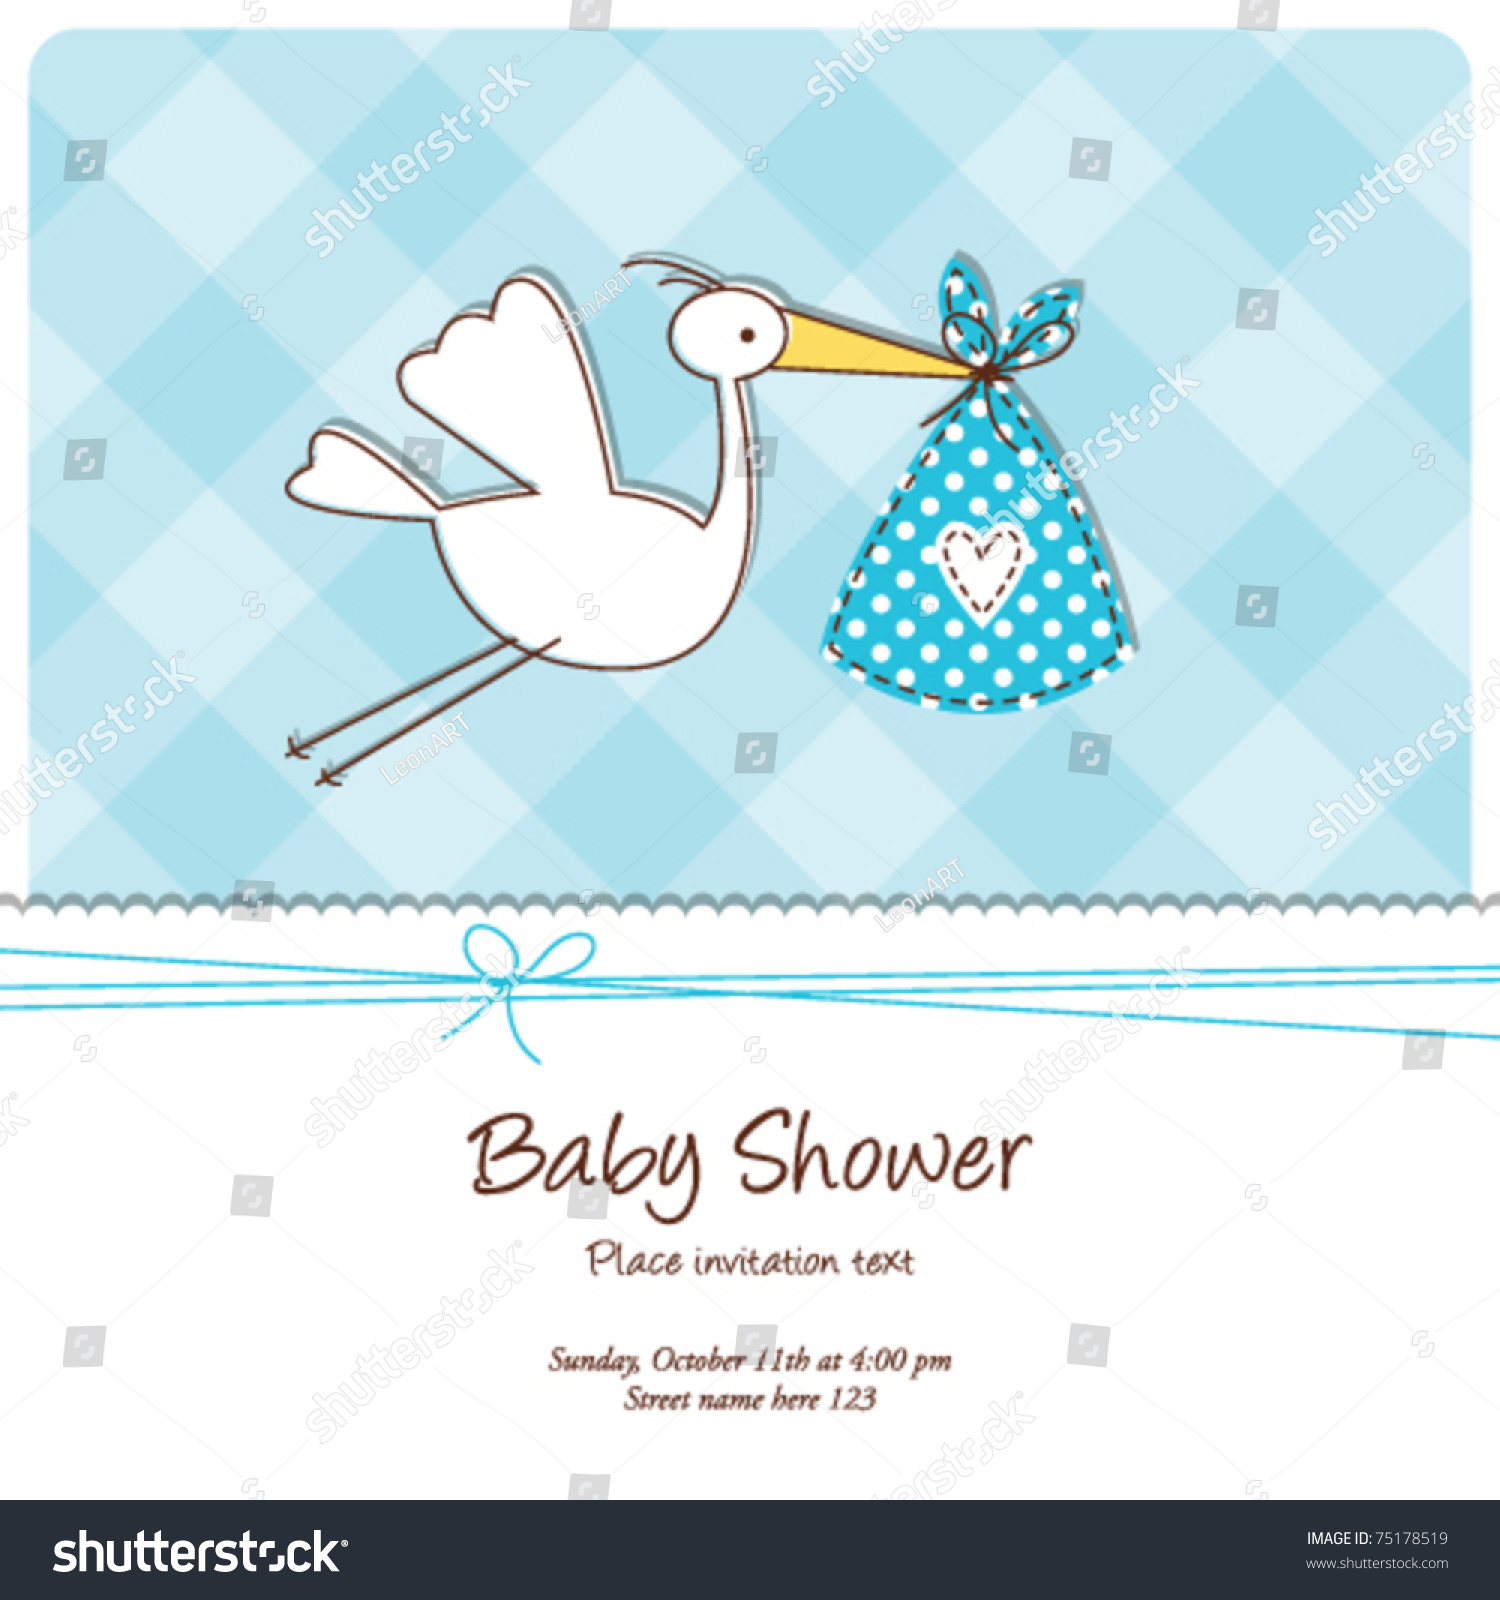 Baby Boy Shower Card Vector Illustration Template Auto M105 Military Trailer Wiring Diagram Invitation Cute Stock